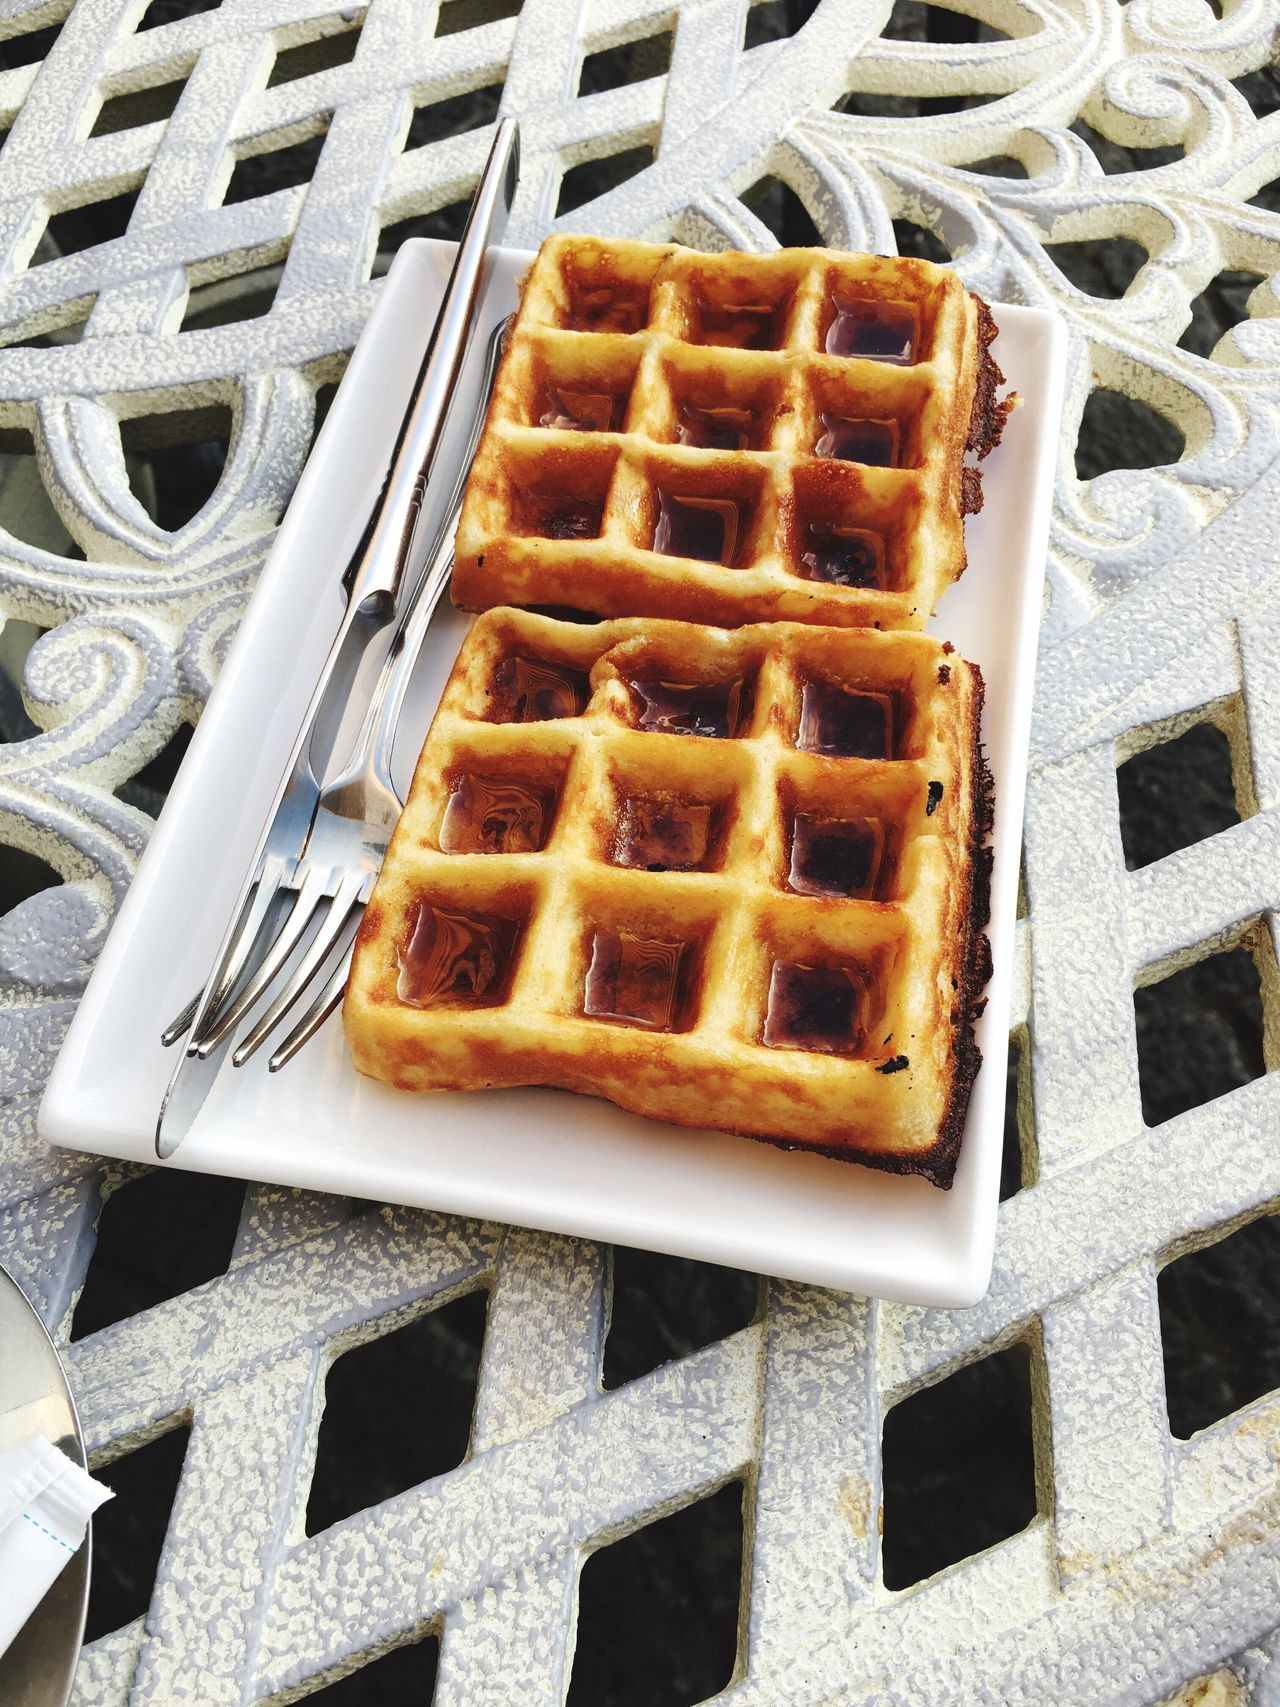 Sweet Food Dessert Food Indulgence Ready-to-eat Waffle Freshness Food And Drink Tart - Dessert Unhealthy Eating Day Cafe